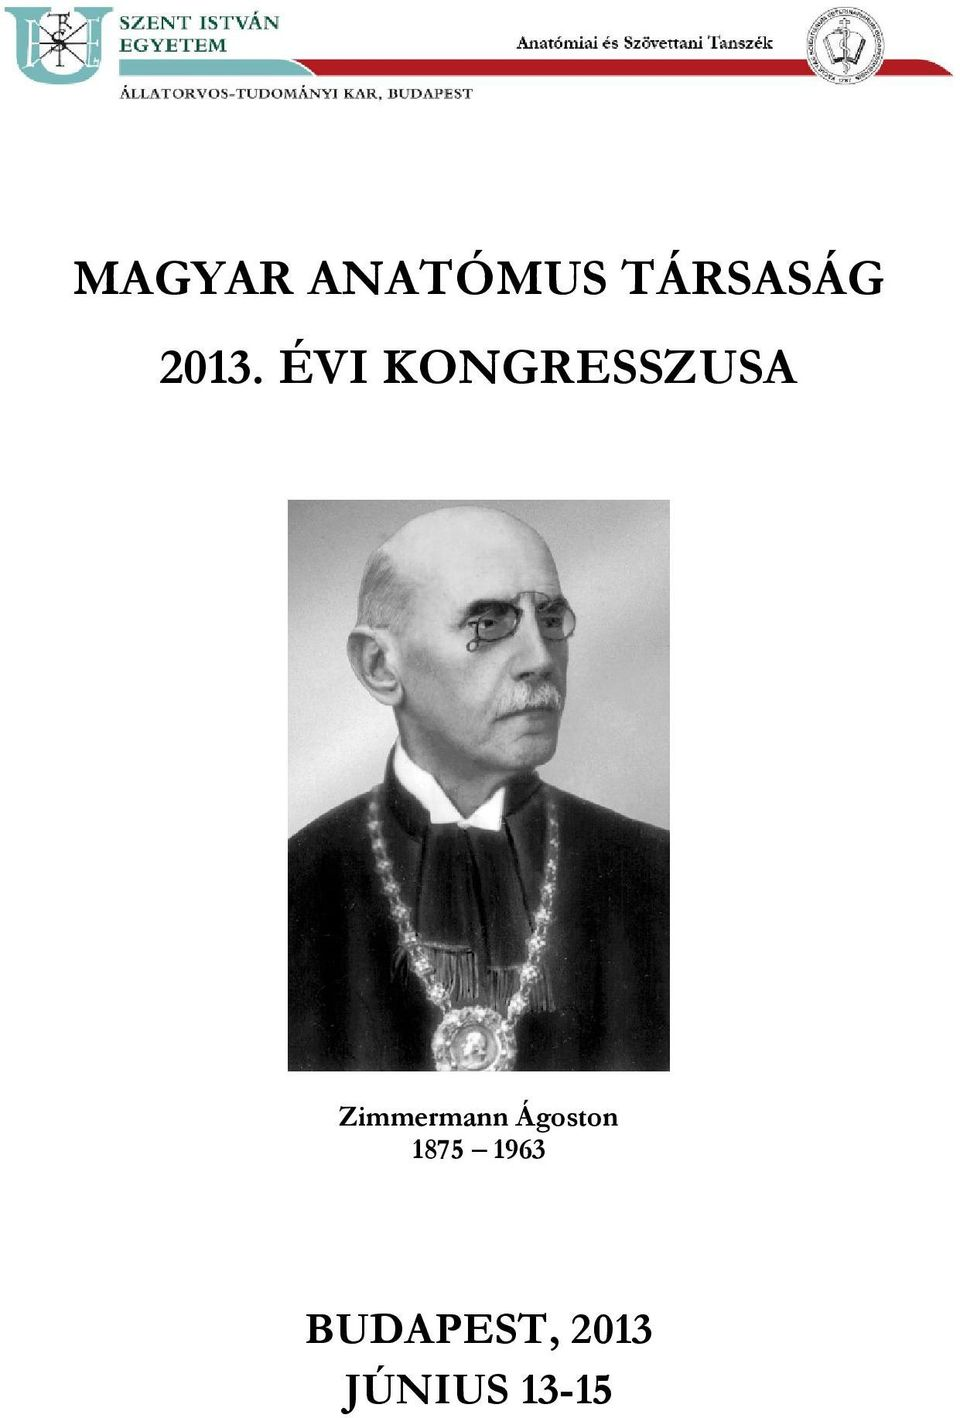 Zimmermann Ágoston 1875